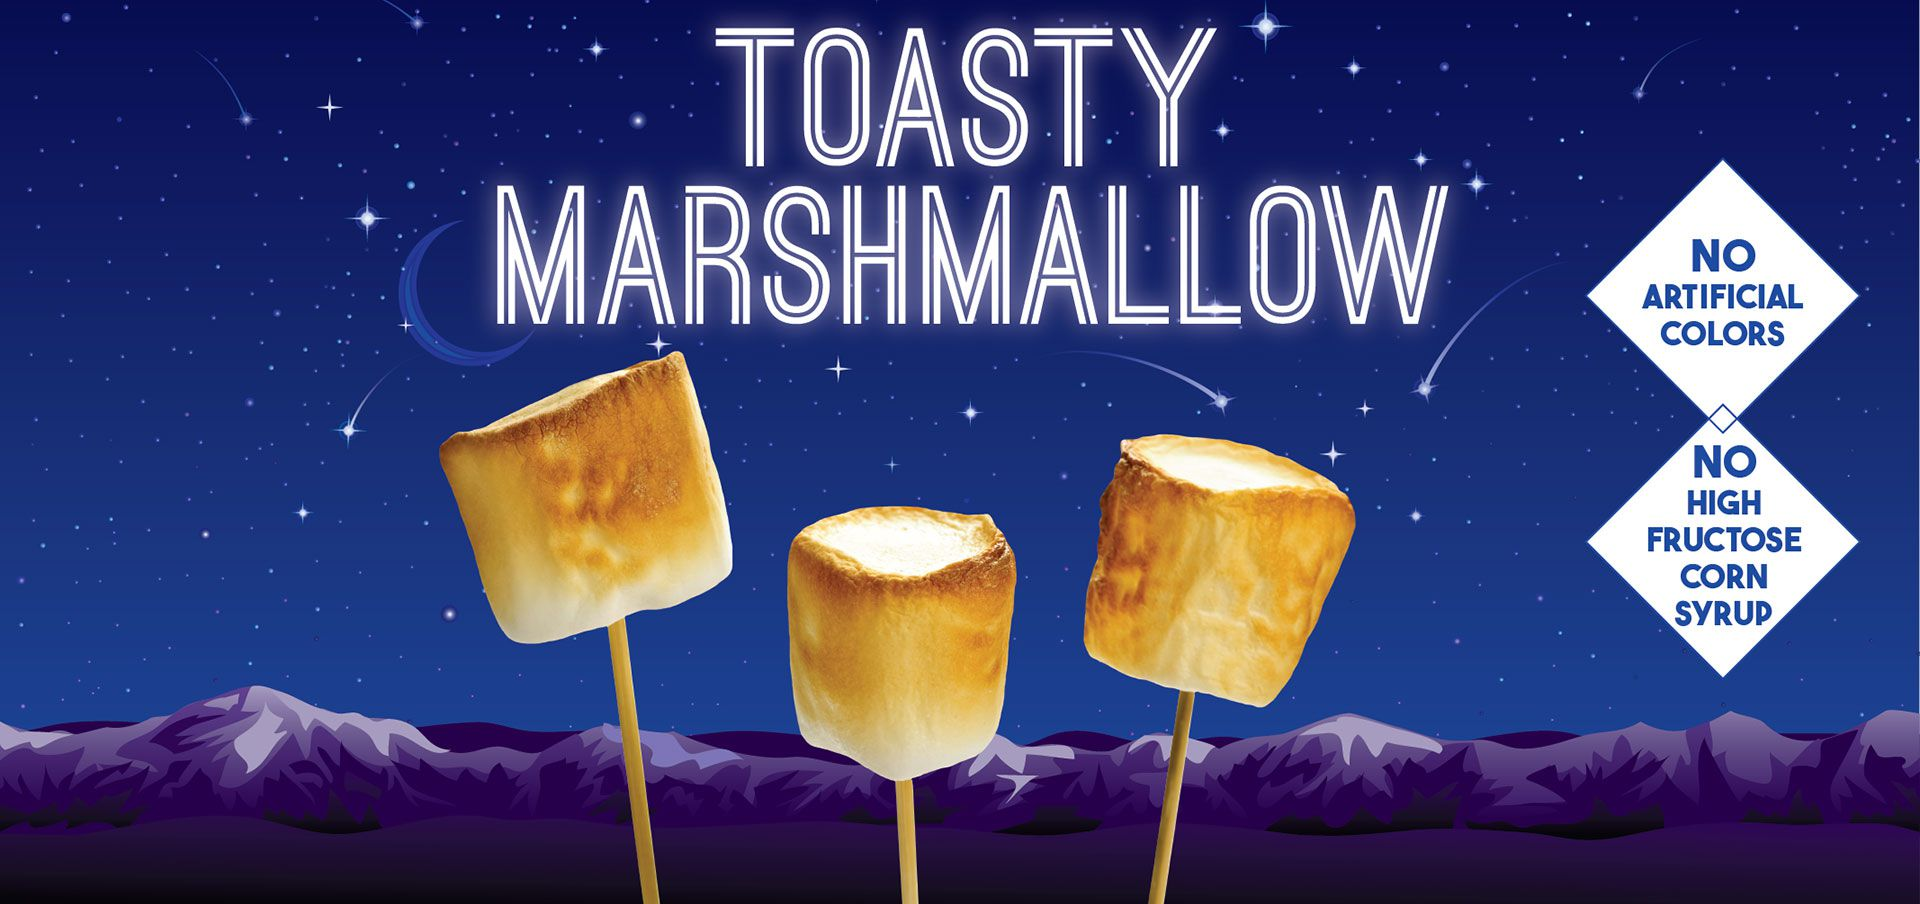 toasty marshmallow label image